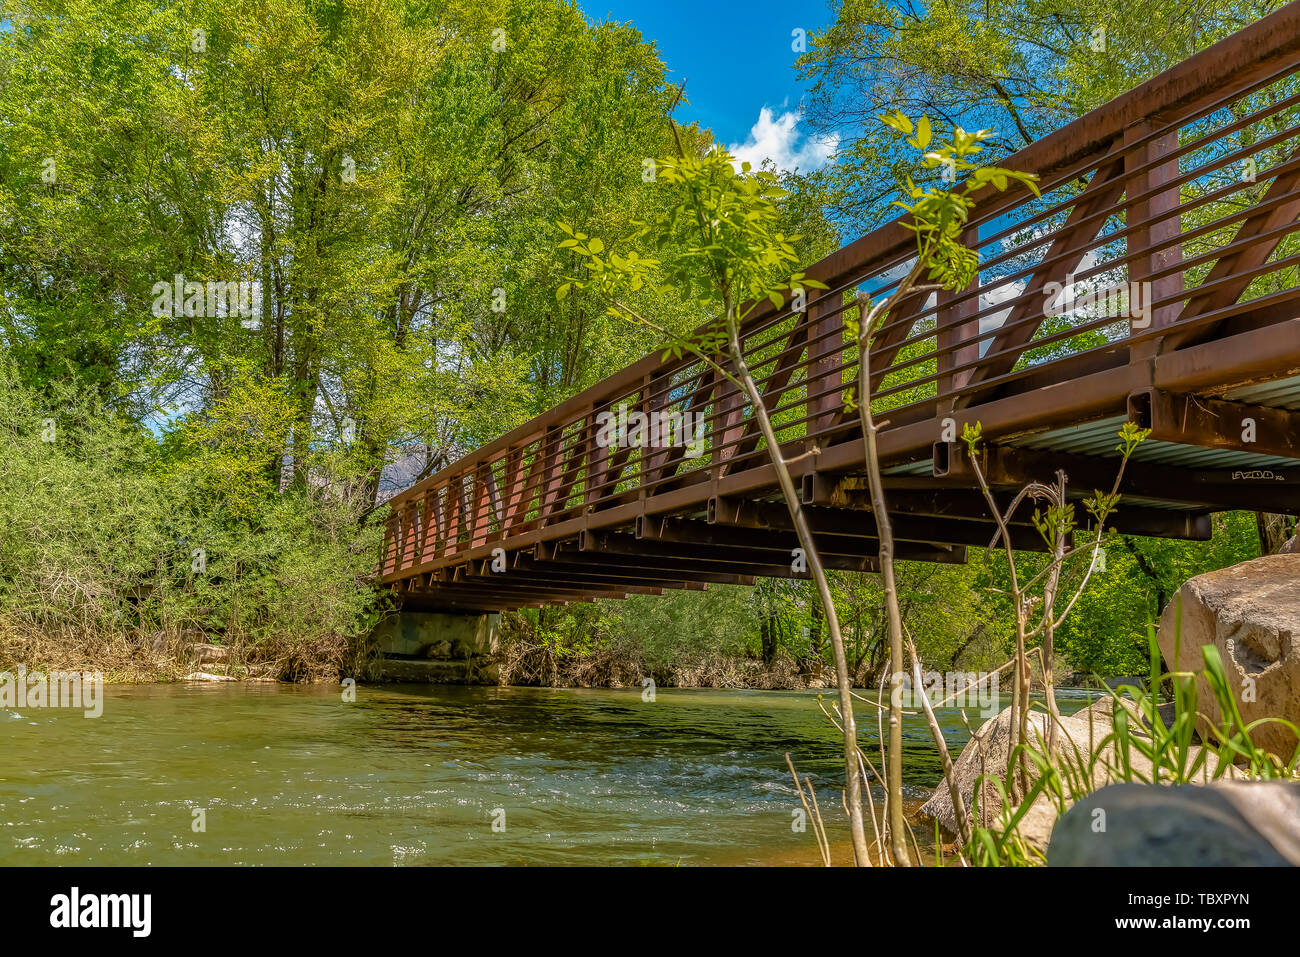 Bridge with metal guardrails over the glistening water at Ogden River Parkway - Stock Image